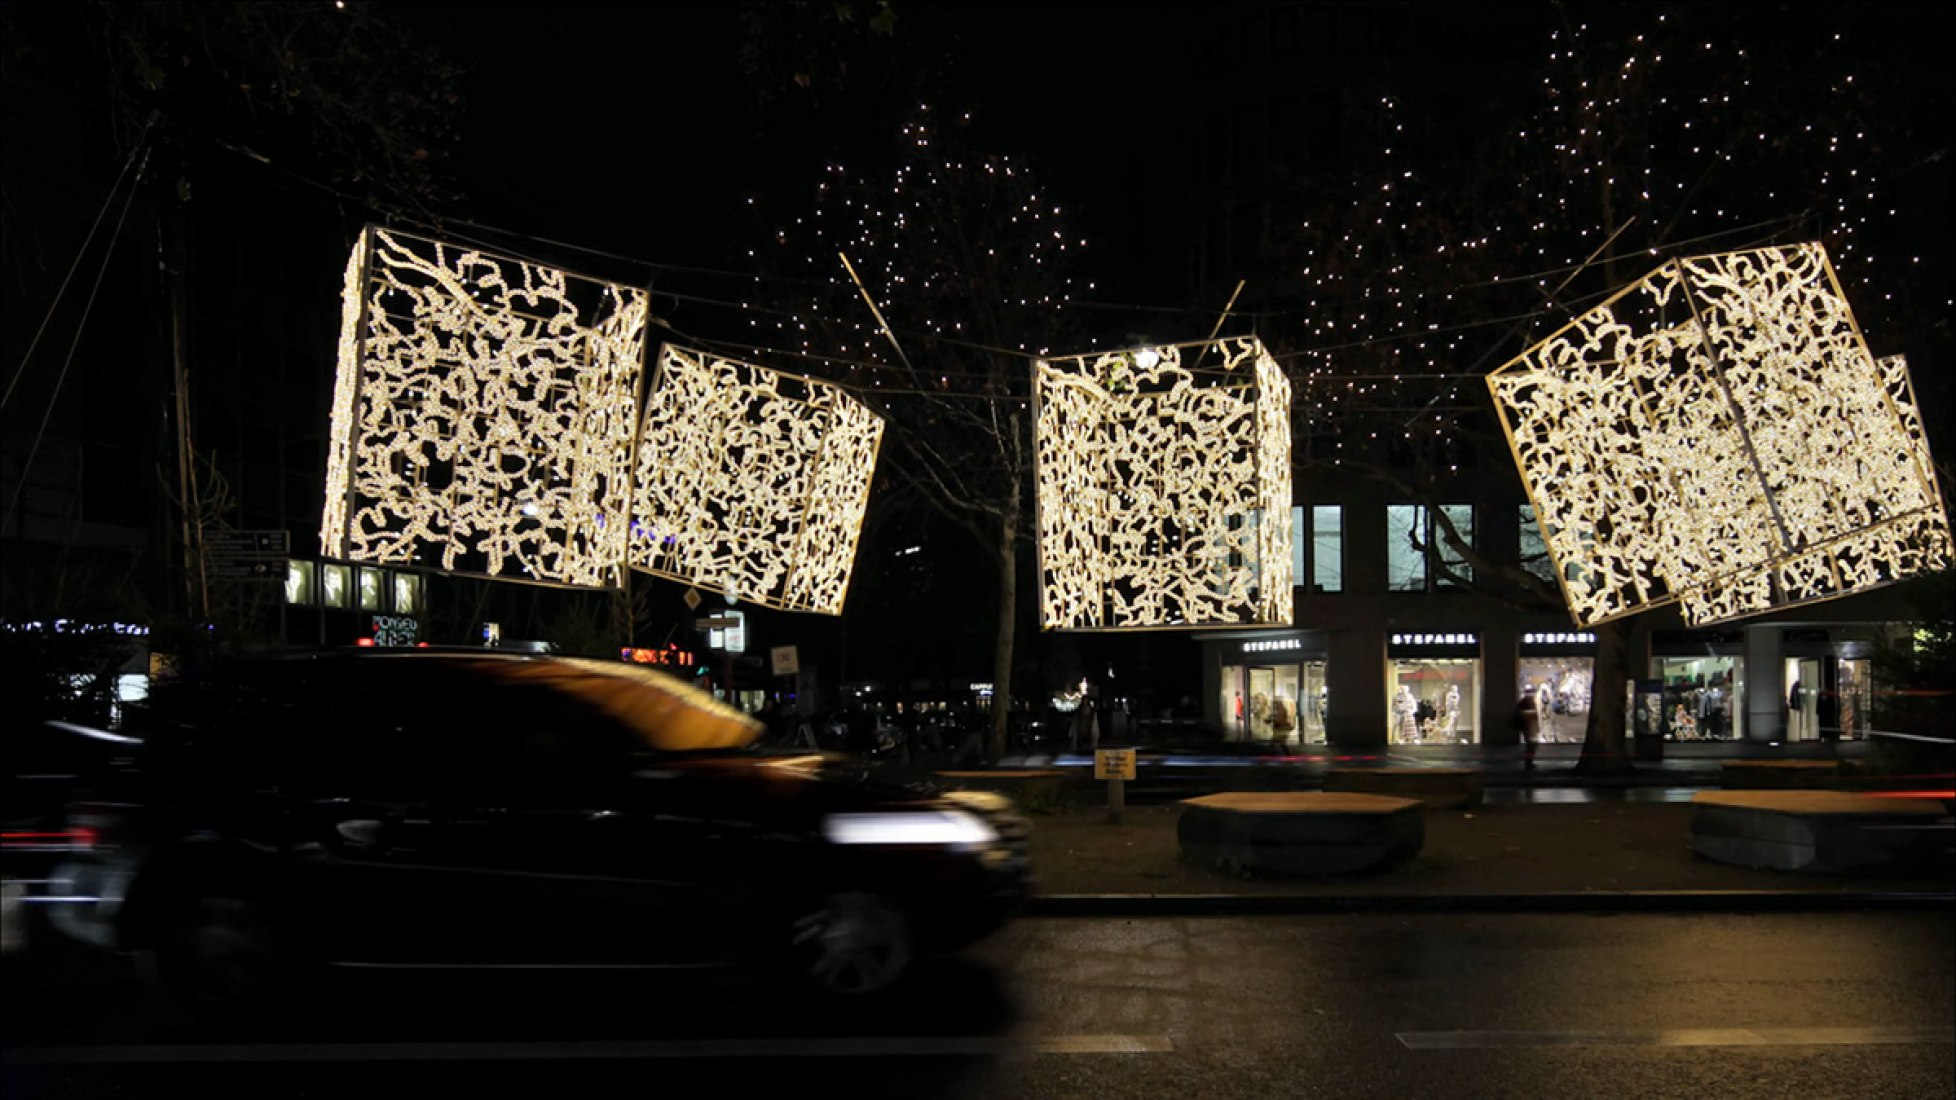 Video screenshot. Berlin Christmas lights 2013 by Brut Deluxe. Video by ImagenSubliminal.